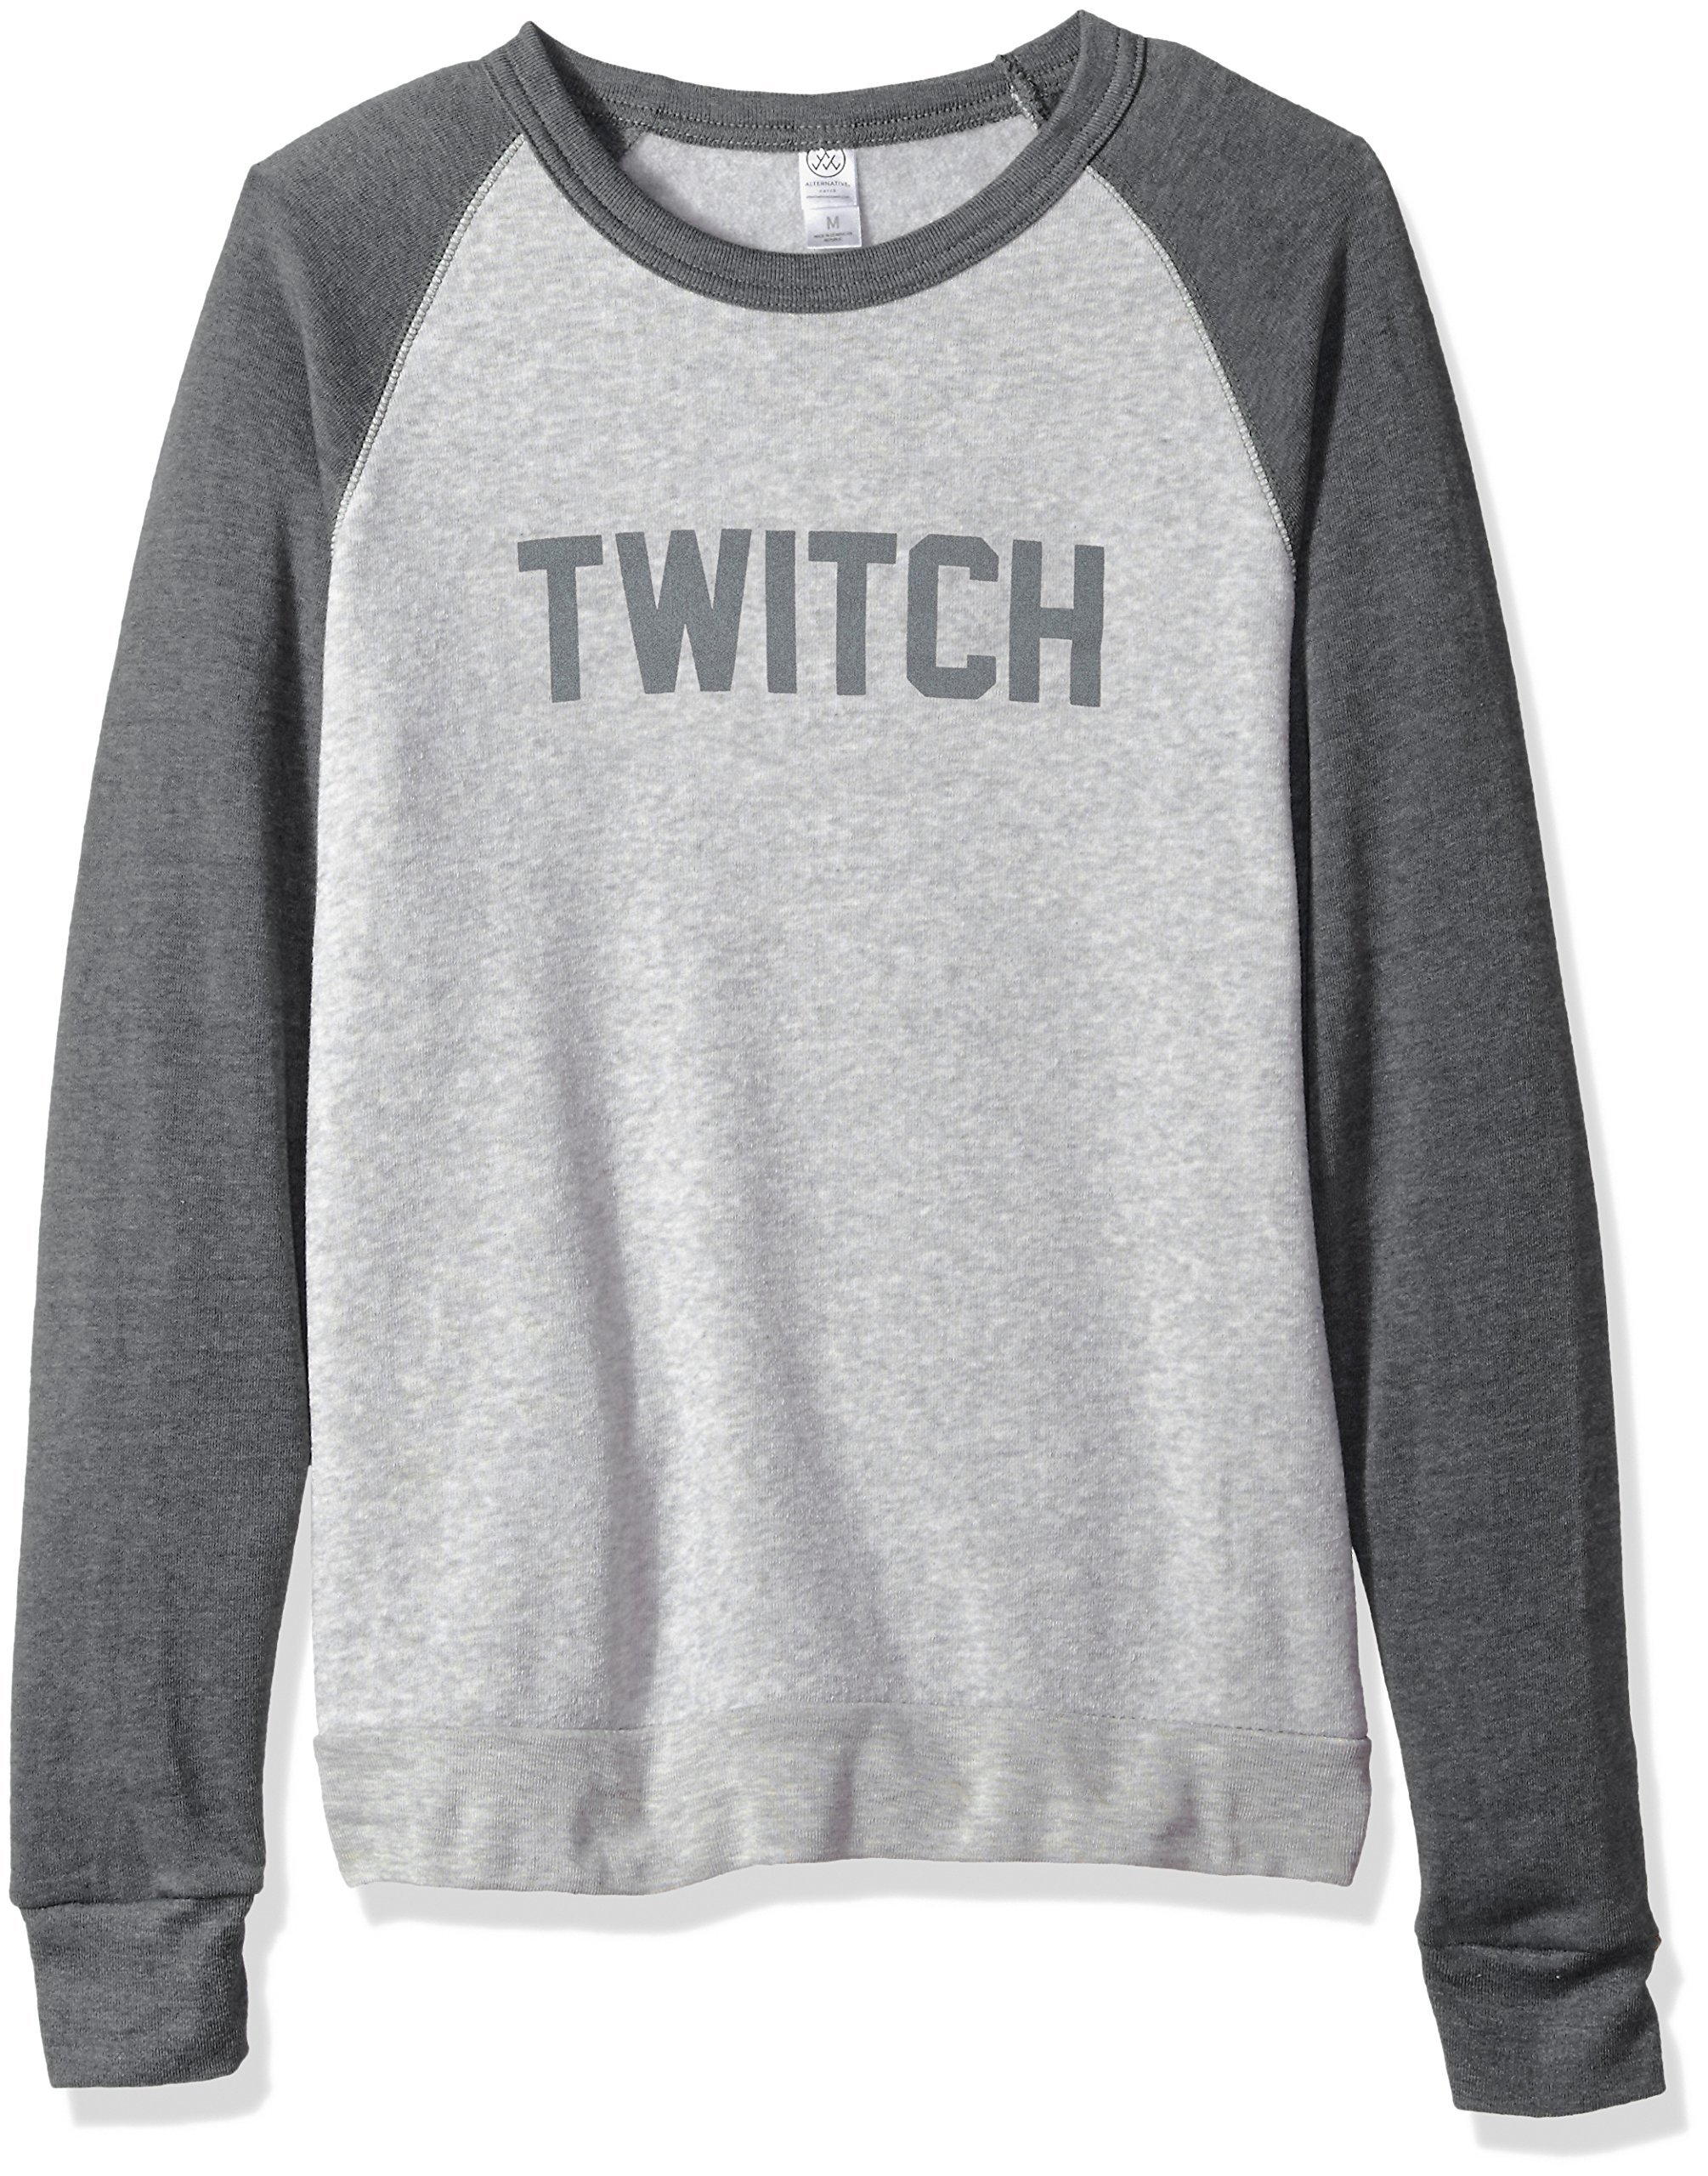 Twitch Colorblock Crewneck Sweatshirt (3XLarge, Grey/Oatmeal) by Twitch